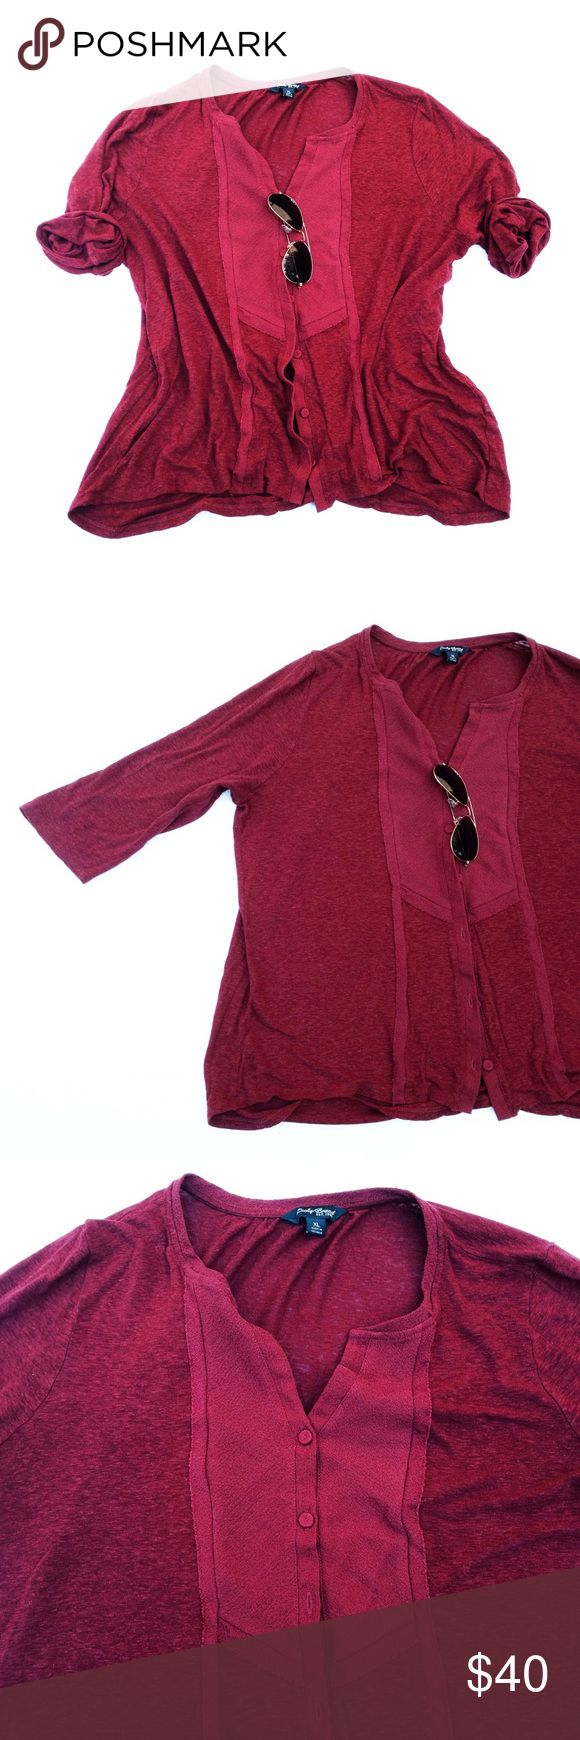 🎈FINAL PRICE🎈LUCKY BRAND top So soft and breezy. Perfect dark red. Buttons all the way upfront. Pit to pit appx 22, length appx 25, sleeve appx 17.  Thank you for visiting my closet. Please let me know if you have any questions. :) Lucky Brand Tops